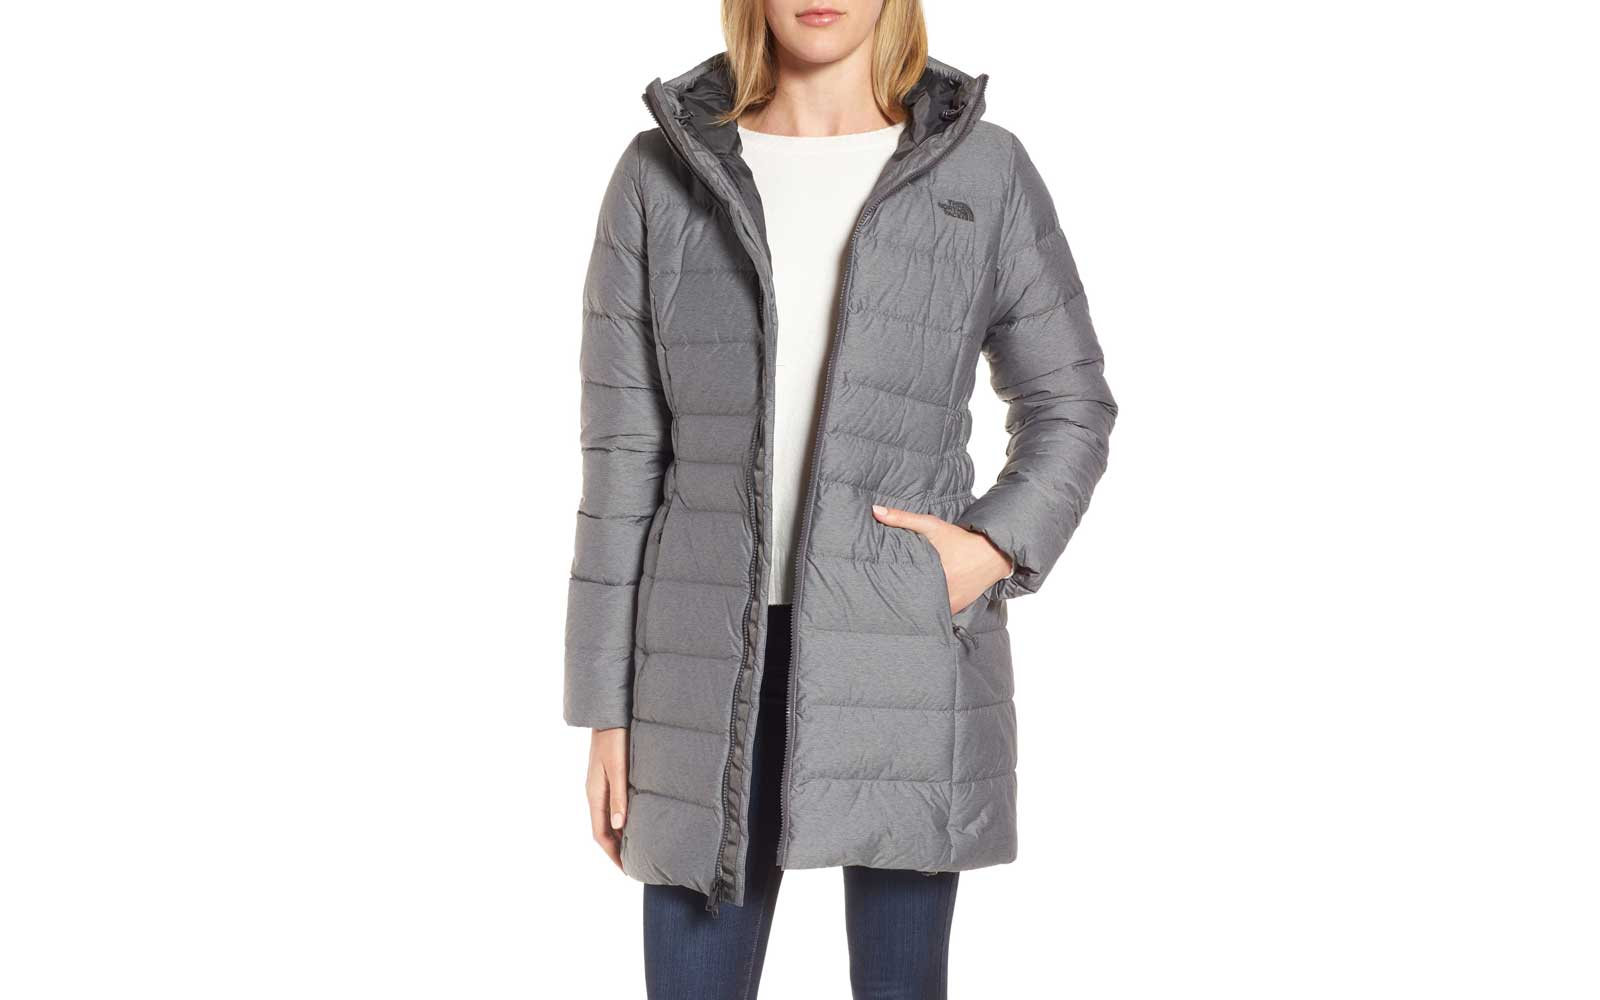 Grey North Face Women's Parka